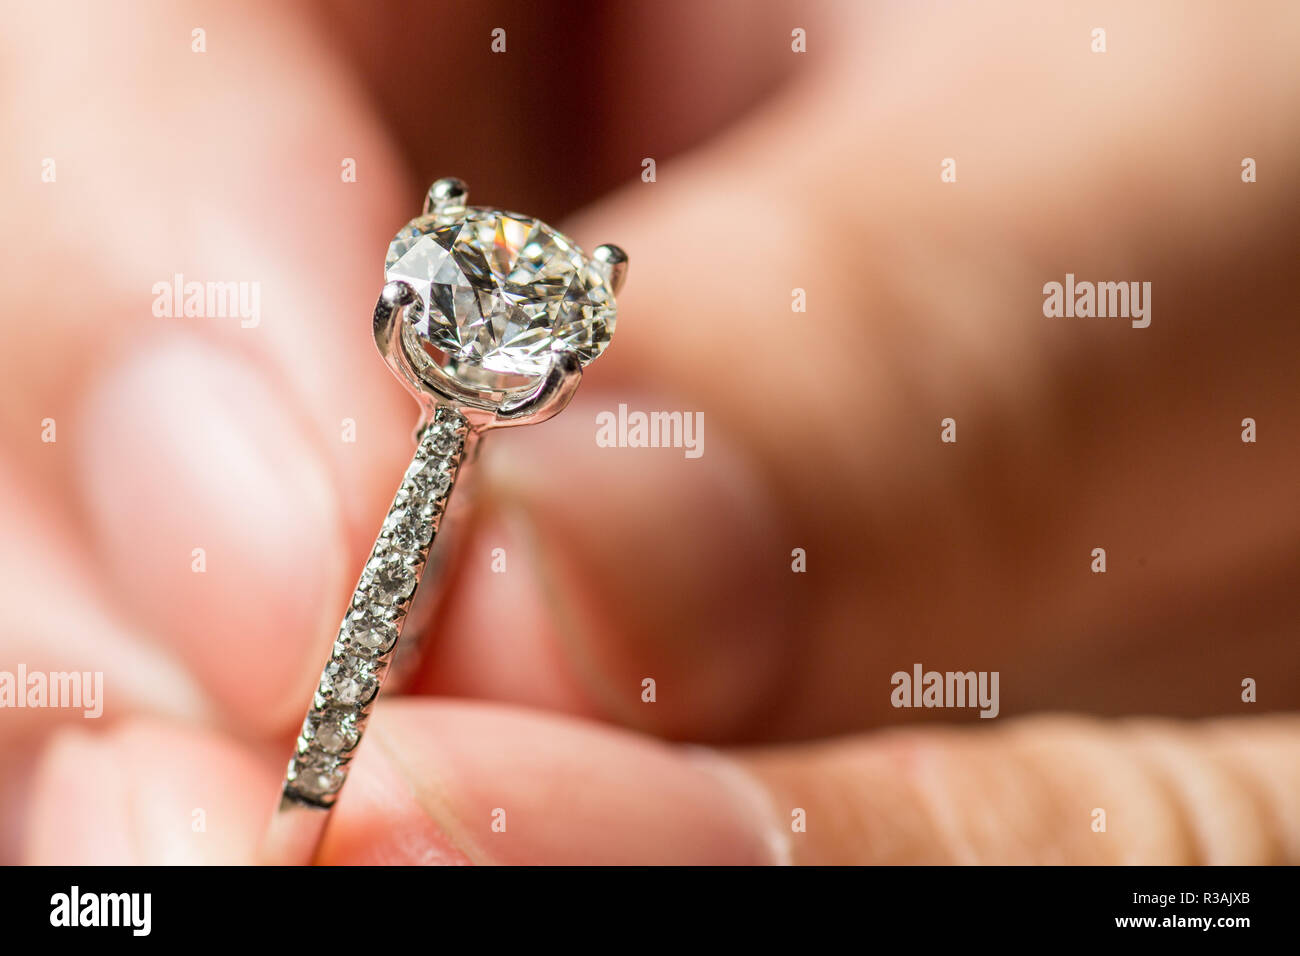 Man's Hands Holding Ring For Proposal - Stock Image